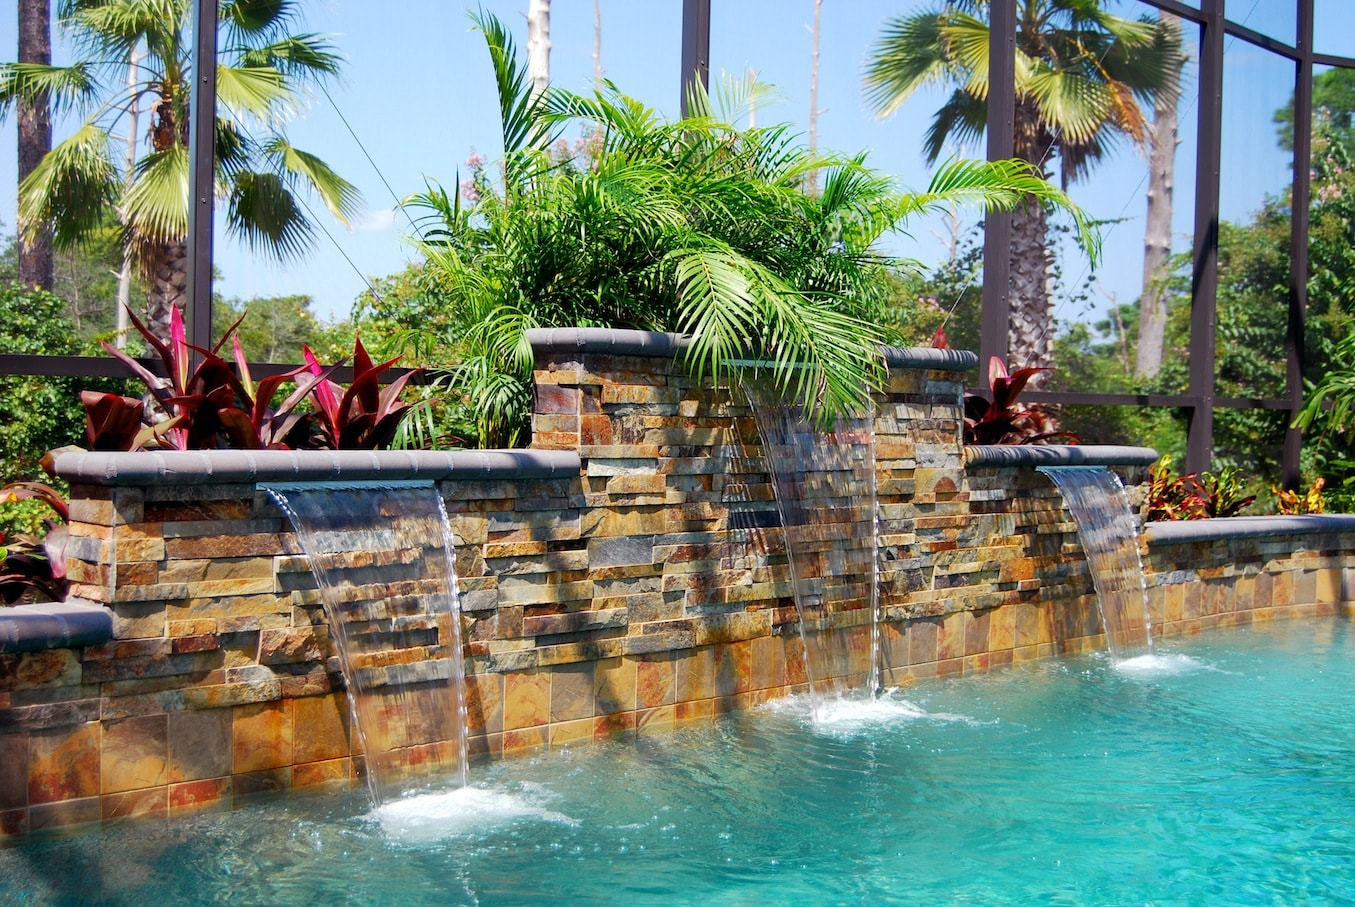 Ochre Stacked Stone Raised Beam Water Feature in Pool